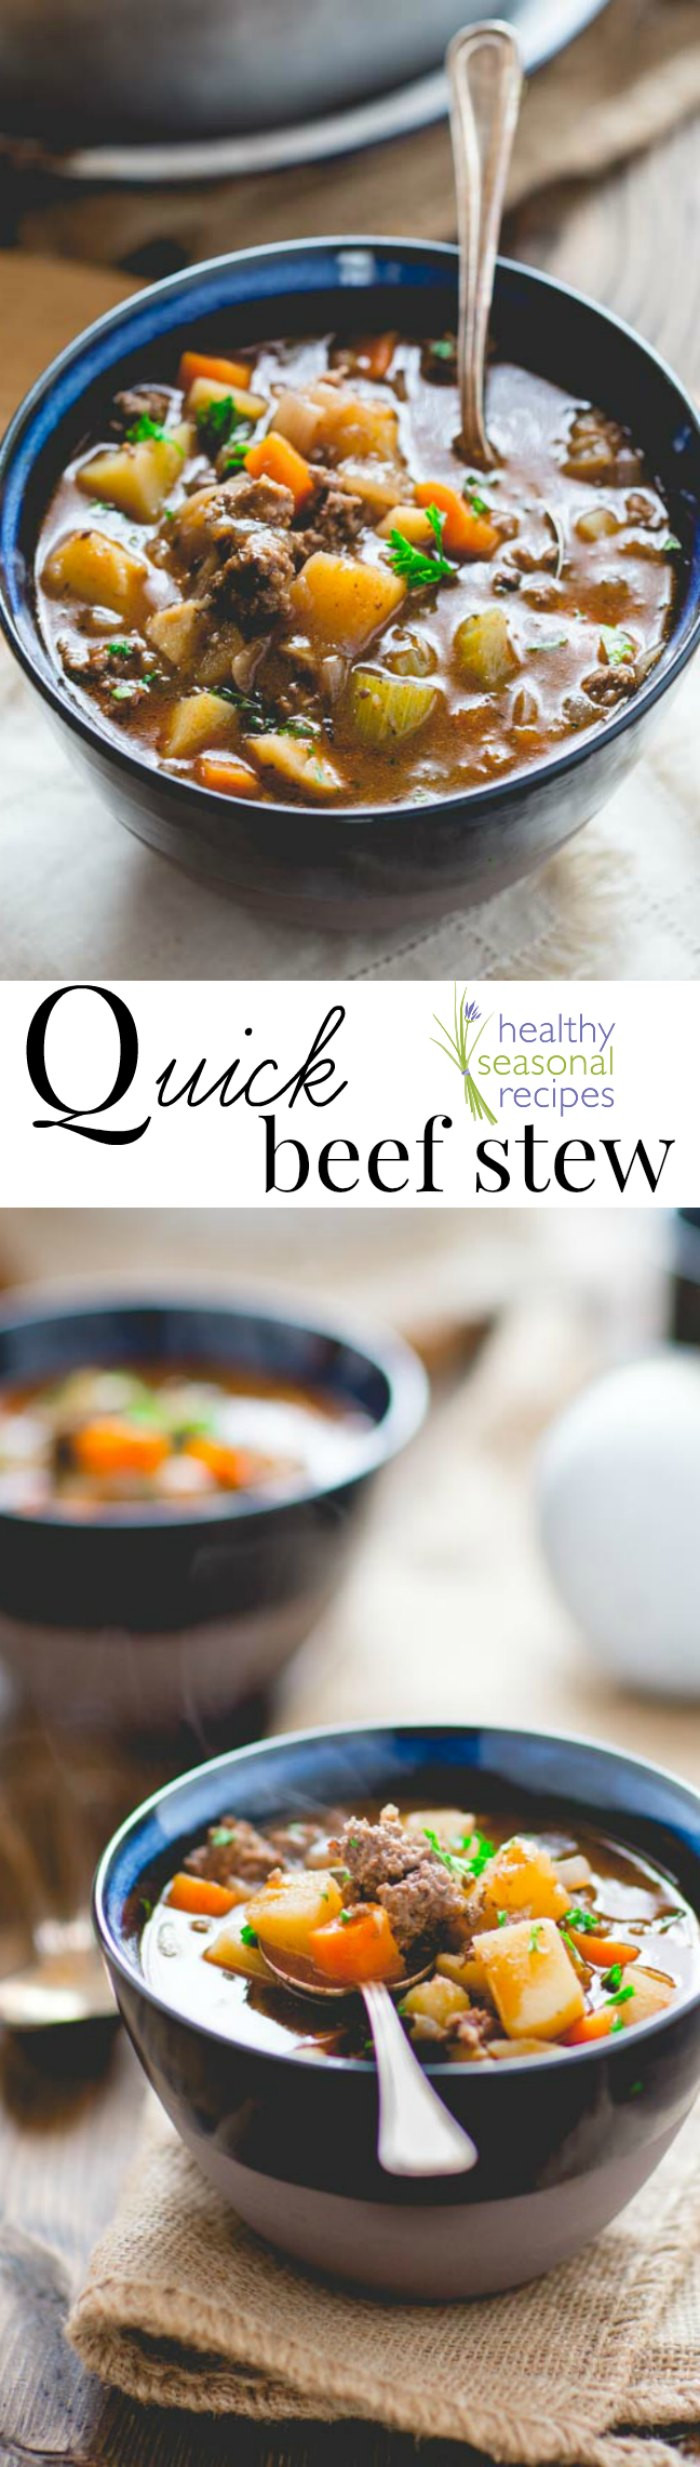 Healthy Stew Recipes Slow Cooker  heart healthy beef stew slow cooker